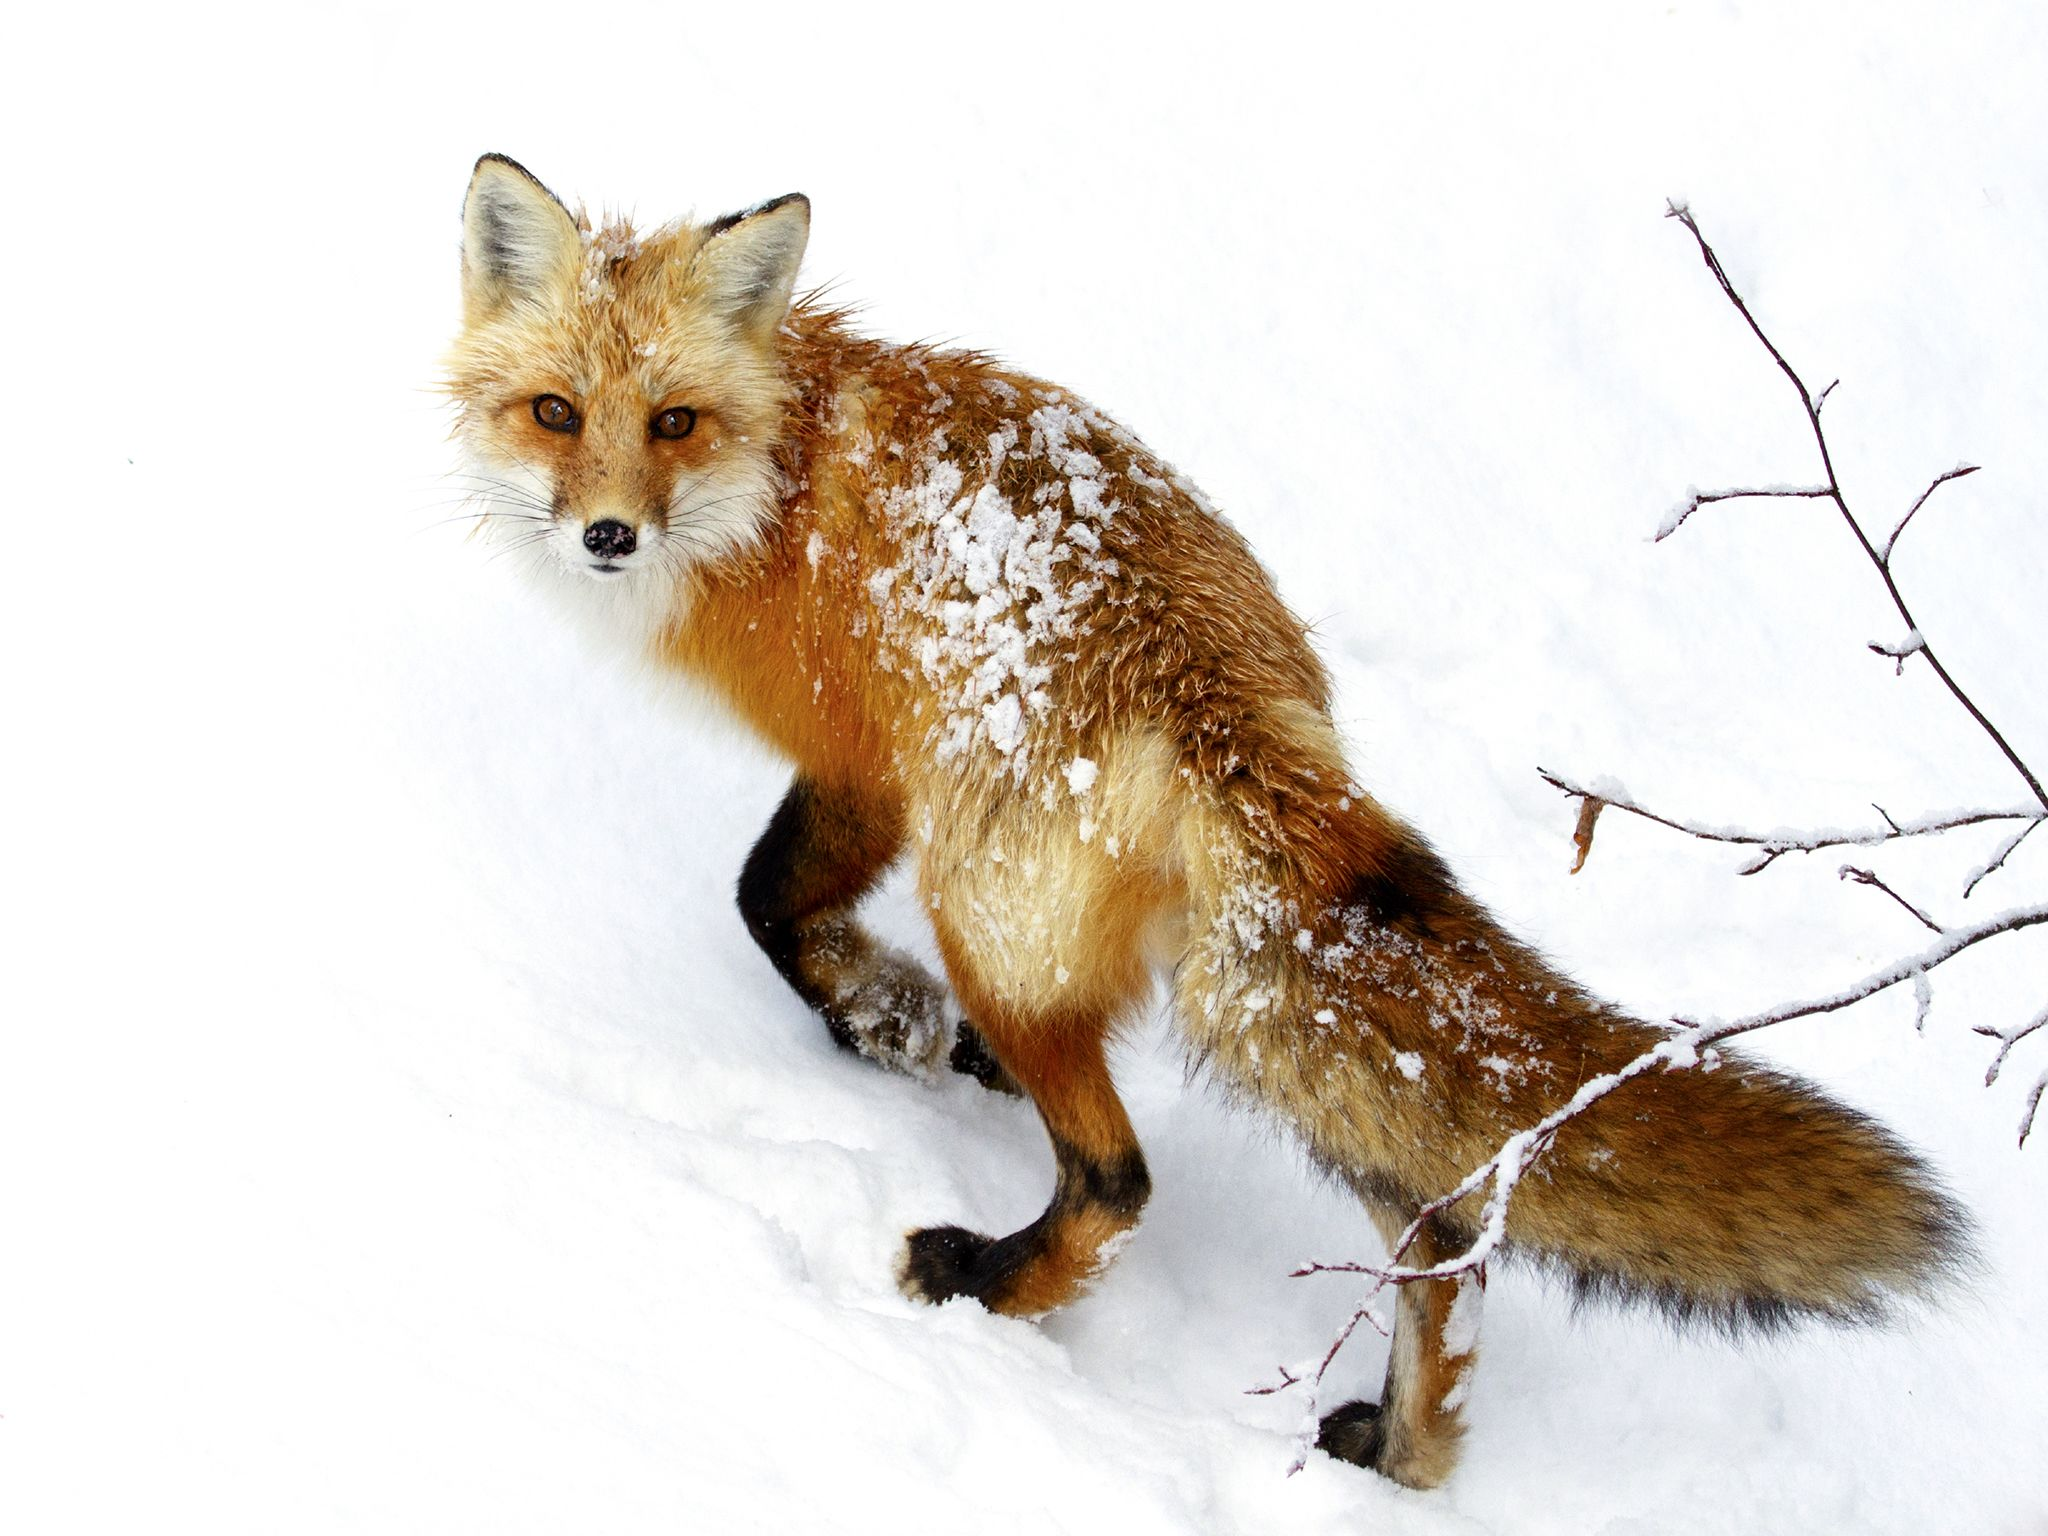 A Red fox in snow. This image is from Winter Wonderland. [Photo of the day - December 2015]